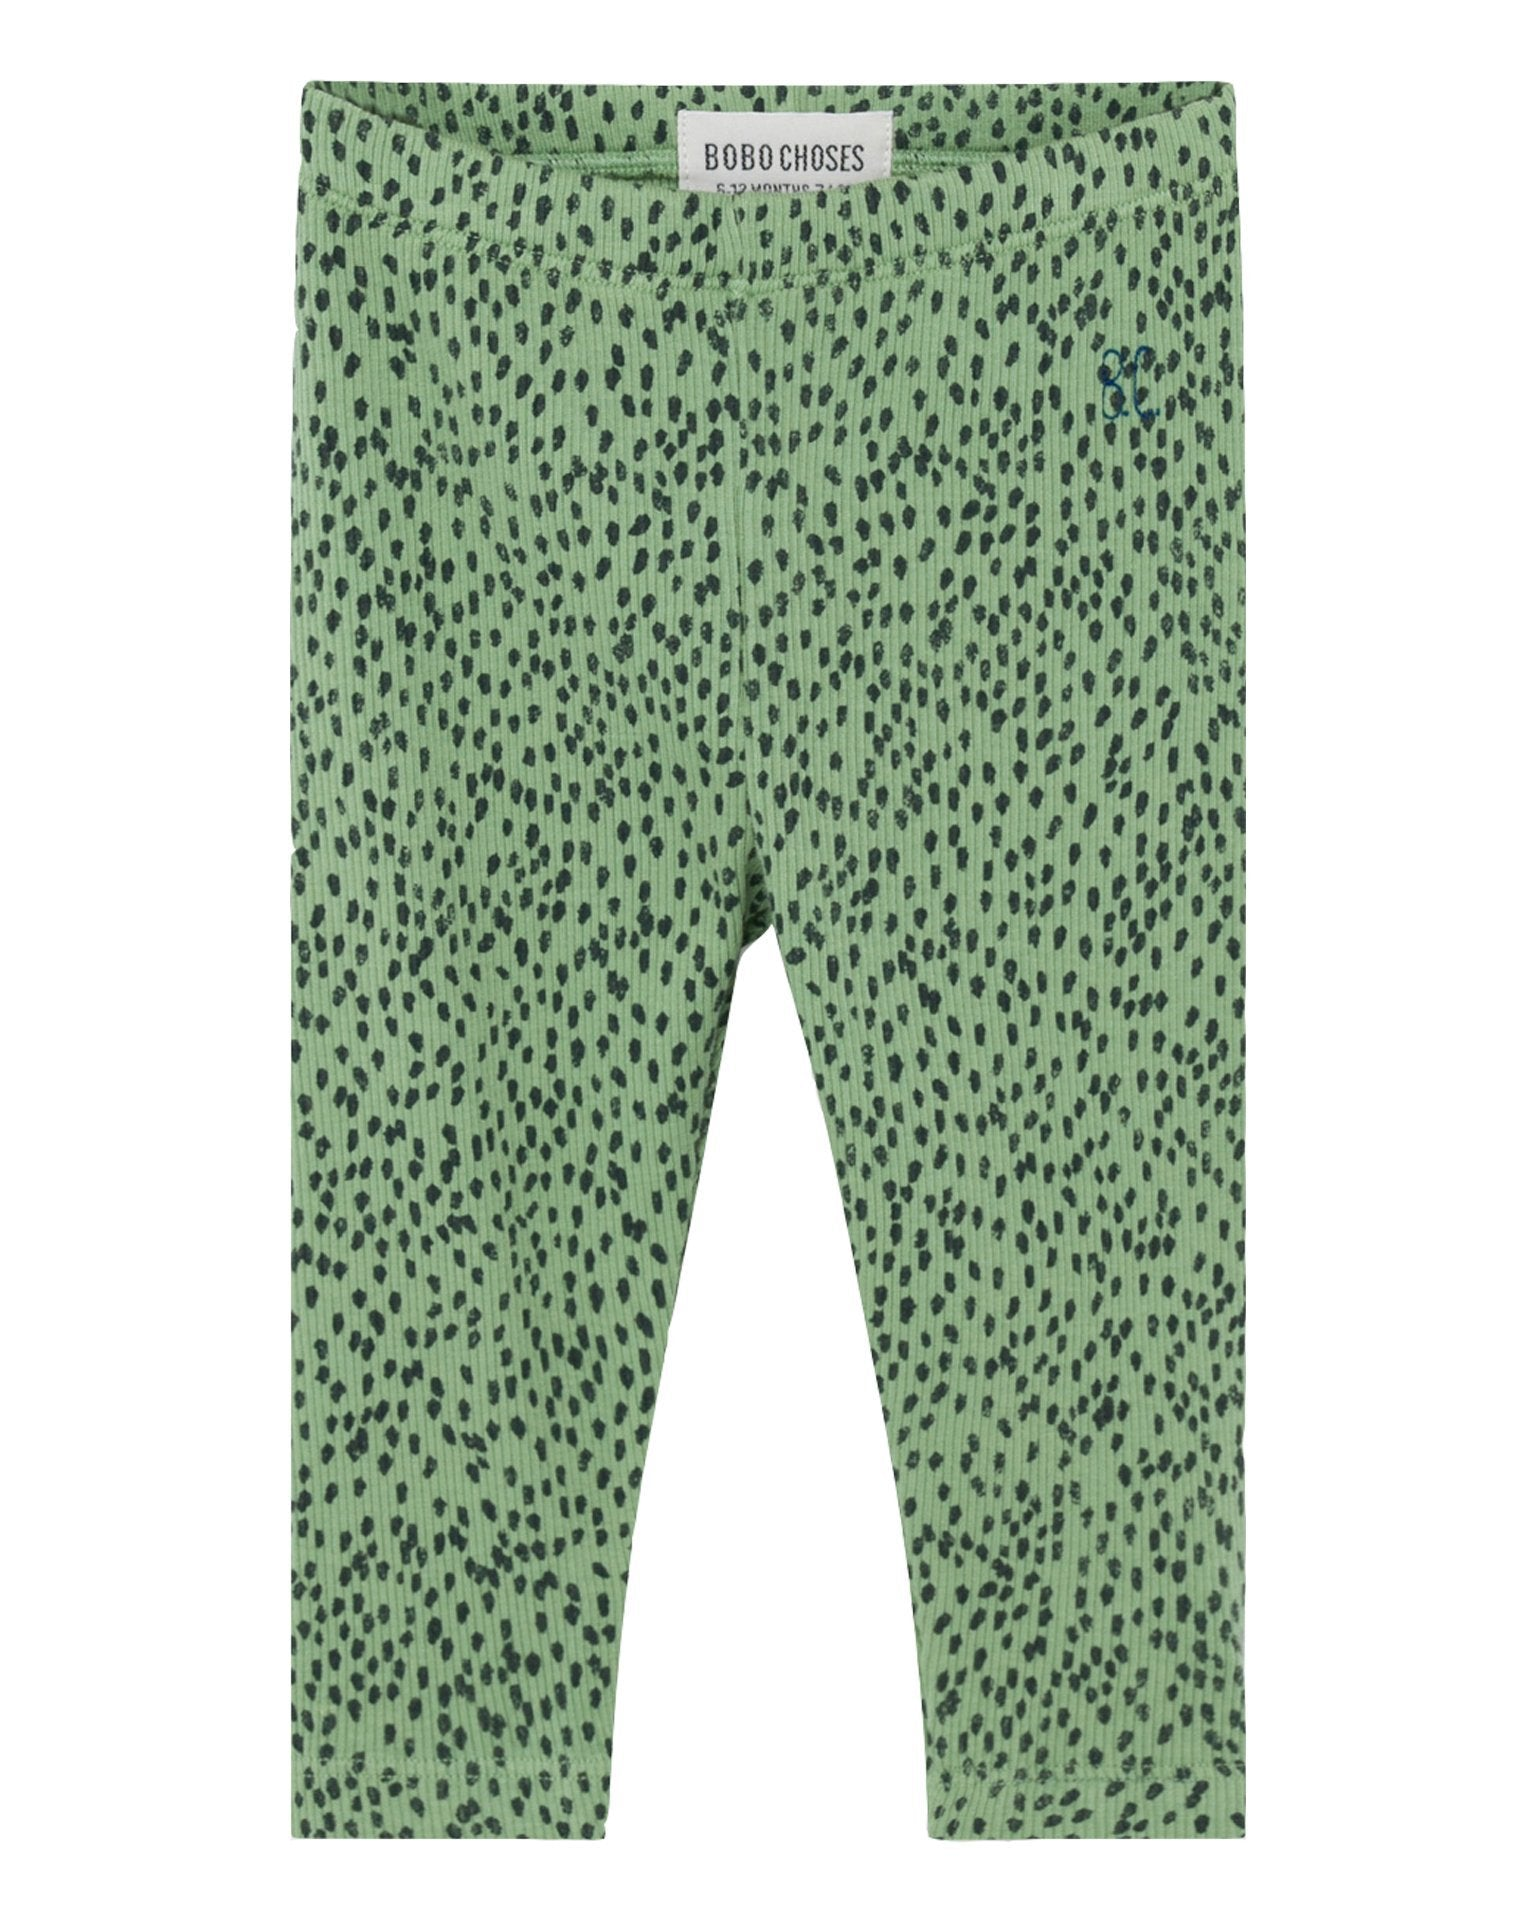 Little bobo choses baby boy all over leopard green baby leggings